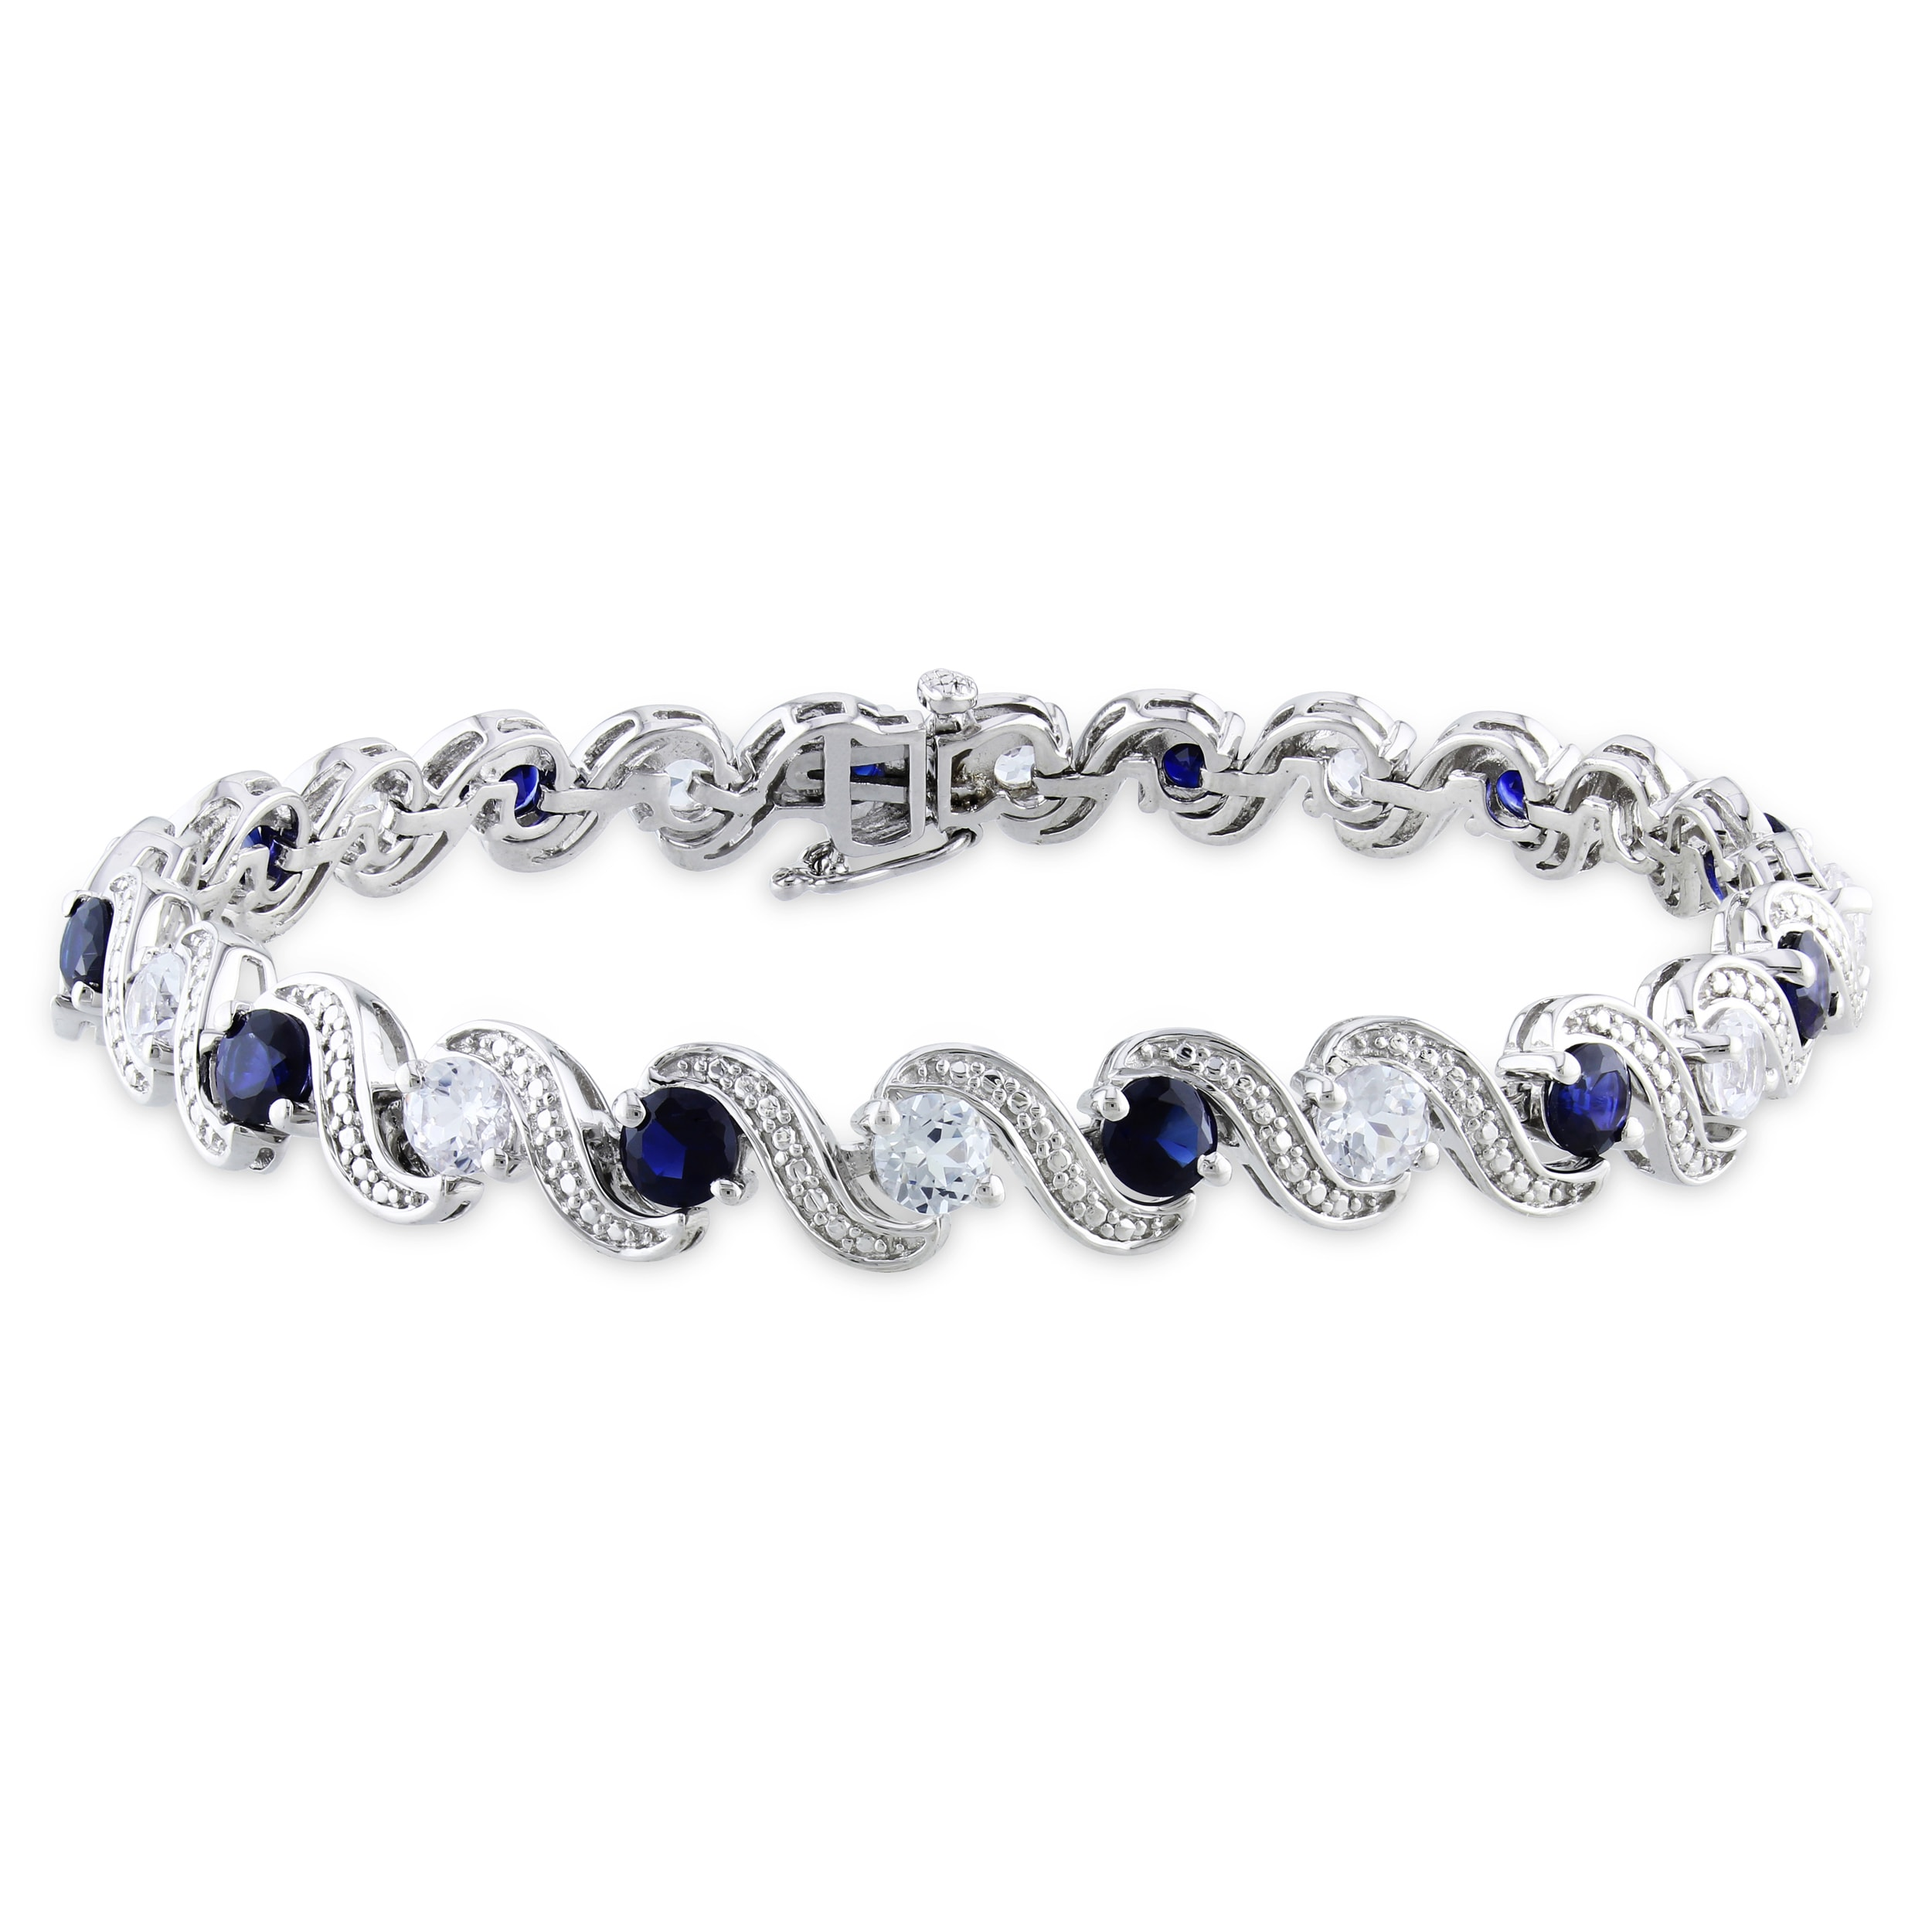 h shop sapphire eco bracelet tennis jewelers d francisco montana friendly free product san conflict